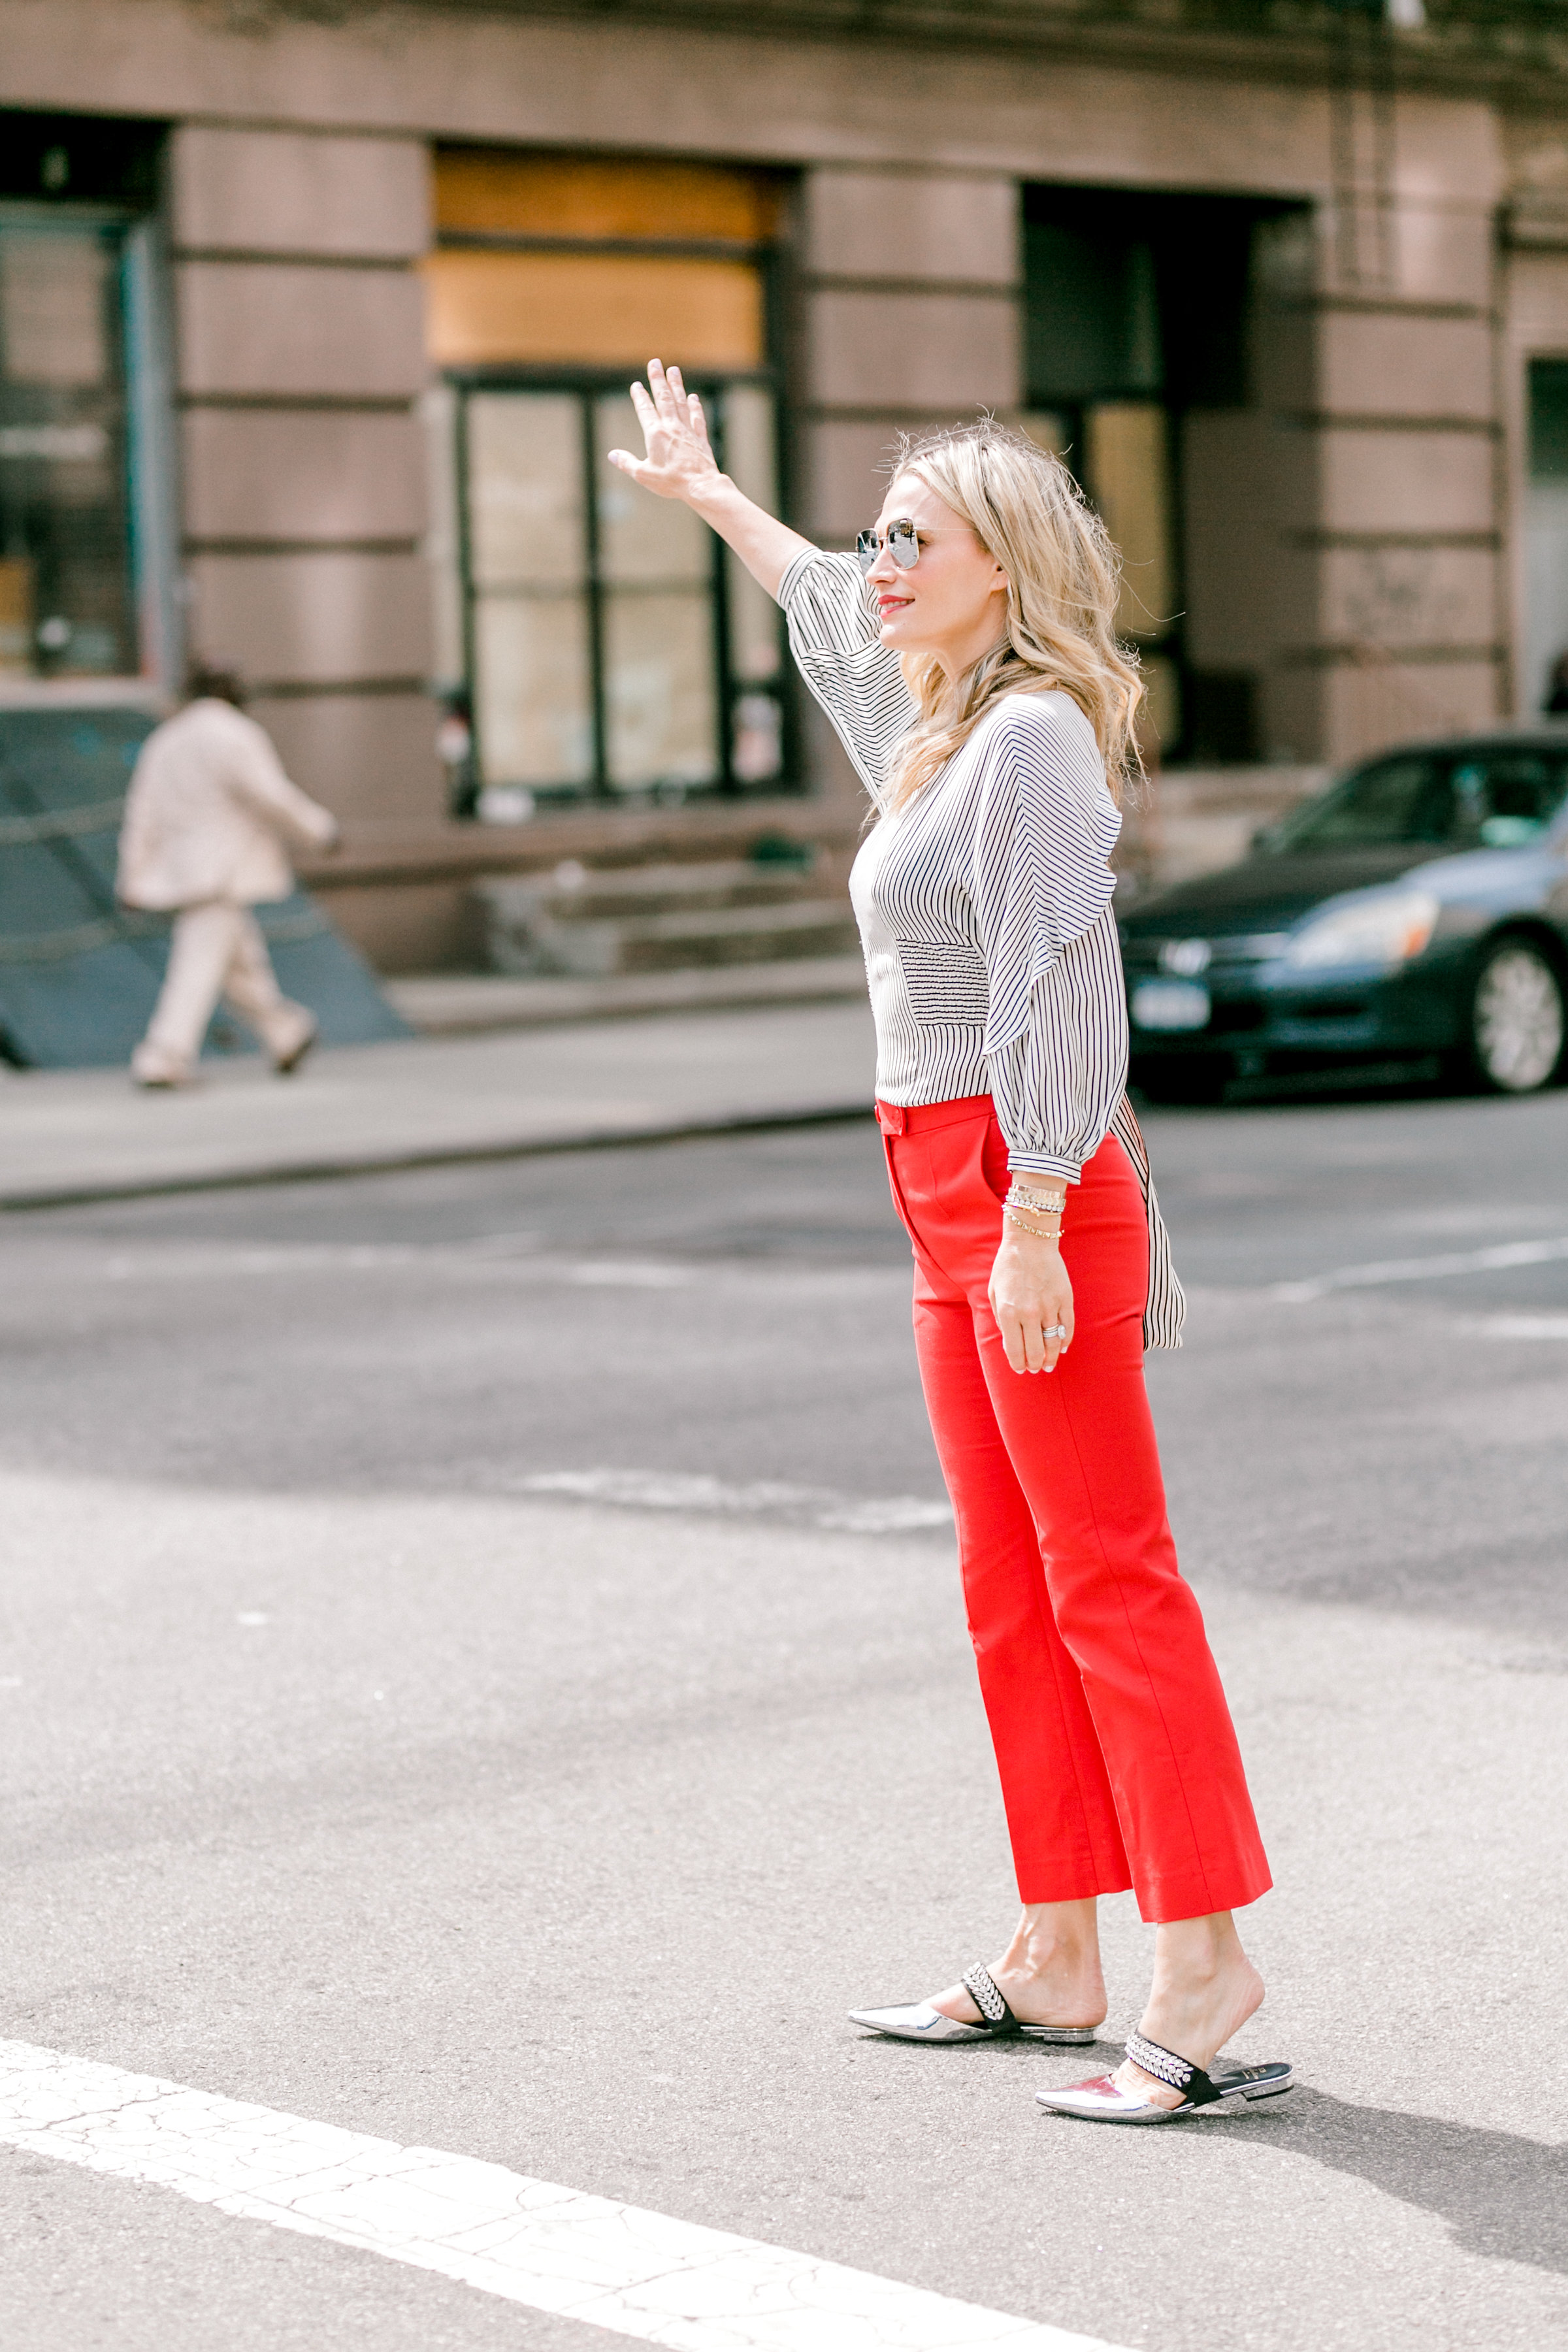 Bright Colors You Need For Your Fall Wardrobe (Becki Smith Photos)